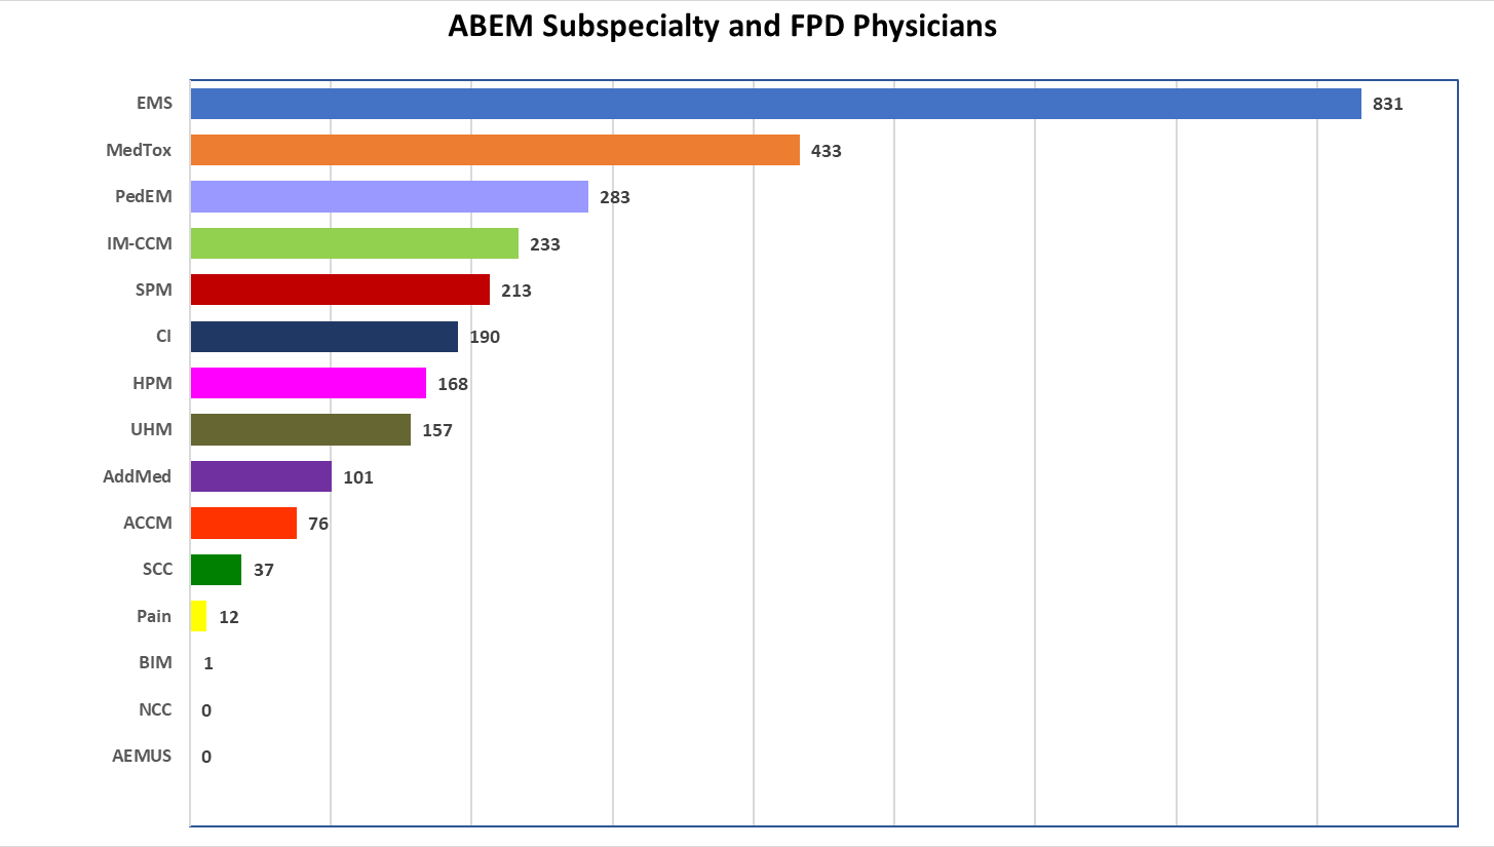 subspecialty chart 3-2020